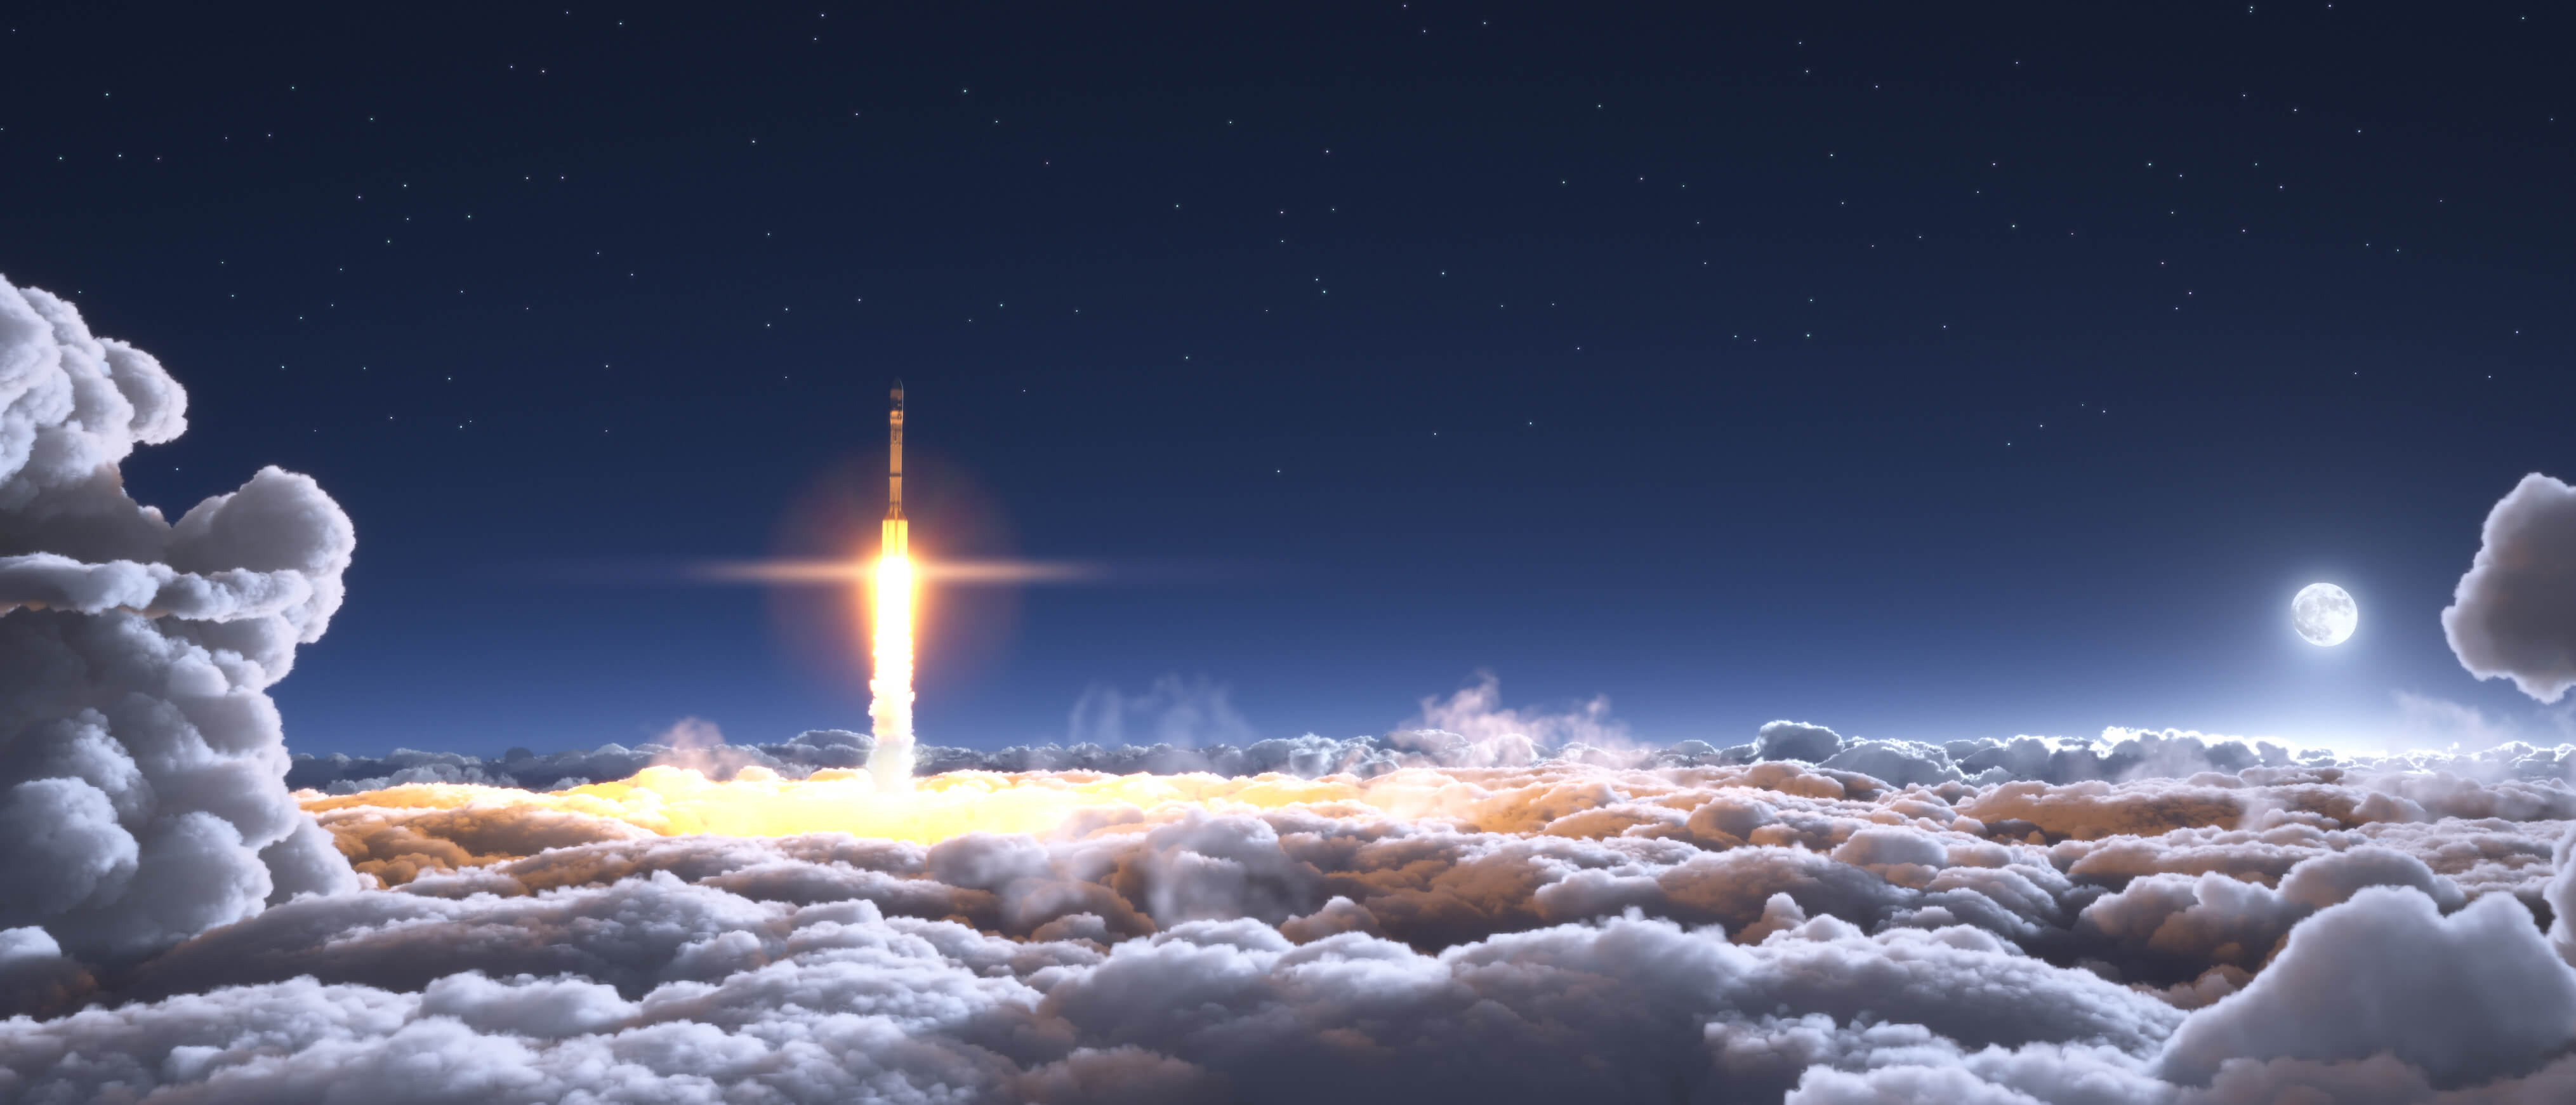 Suborbital Space Flight for the Rest of Us